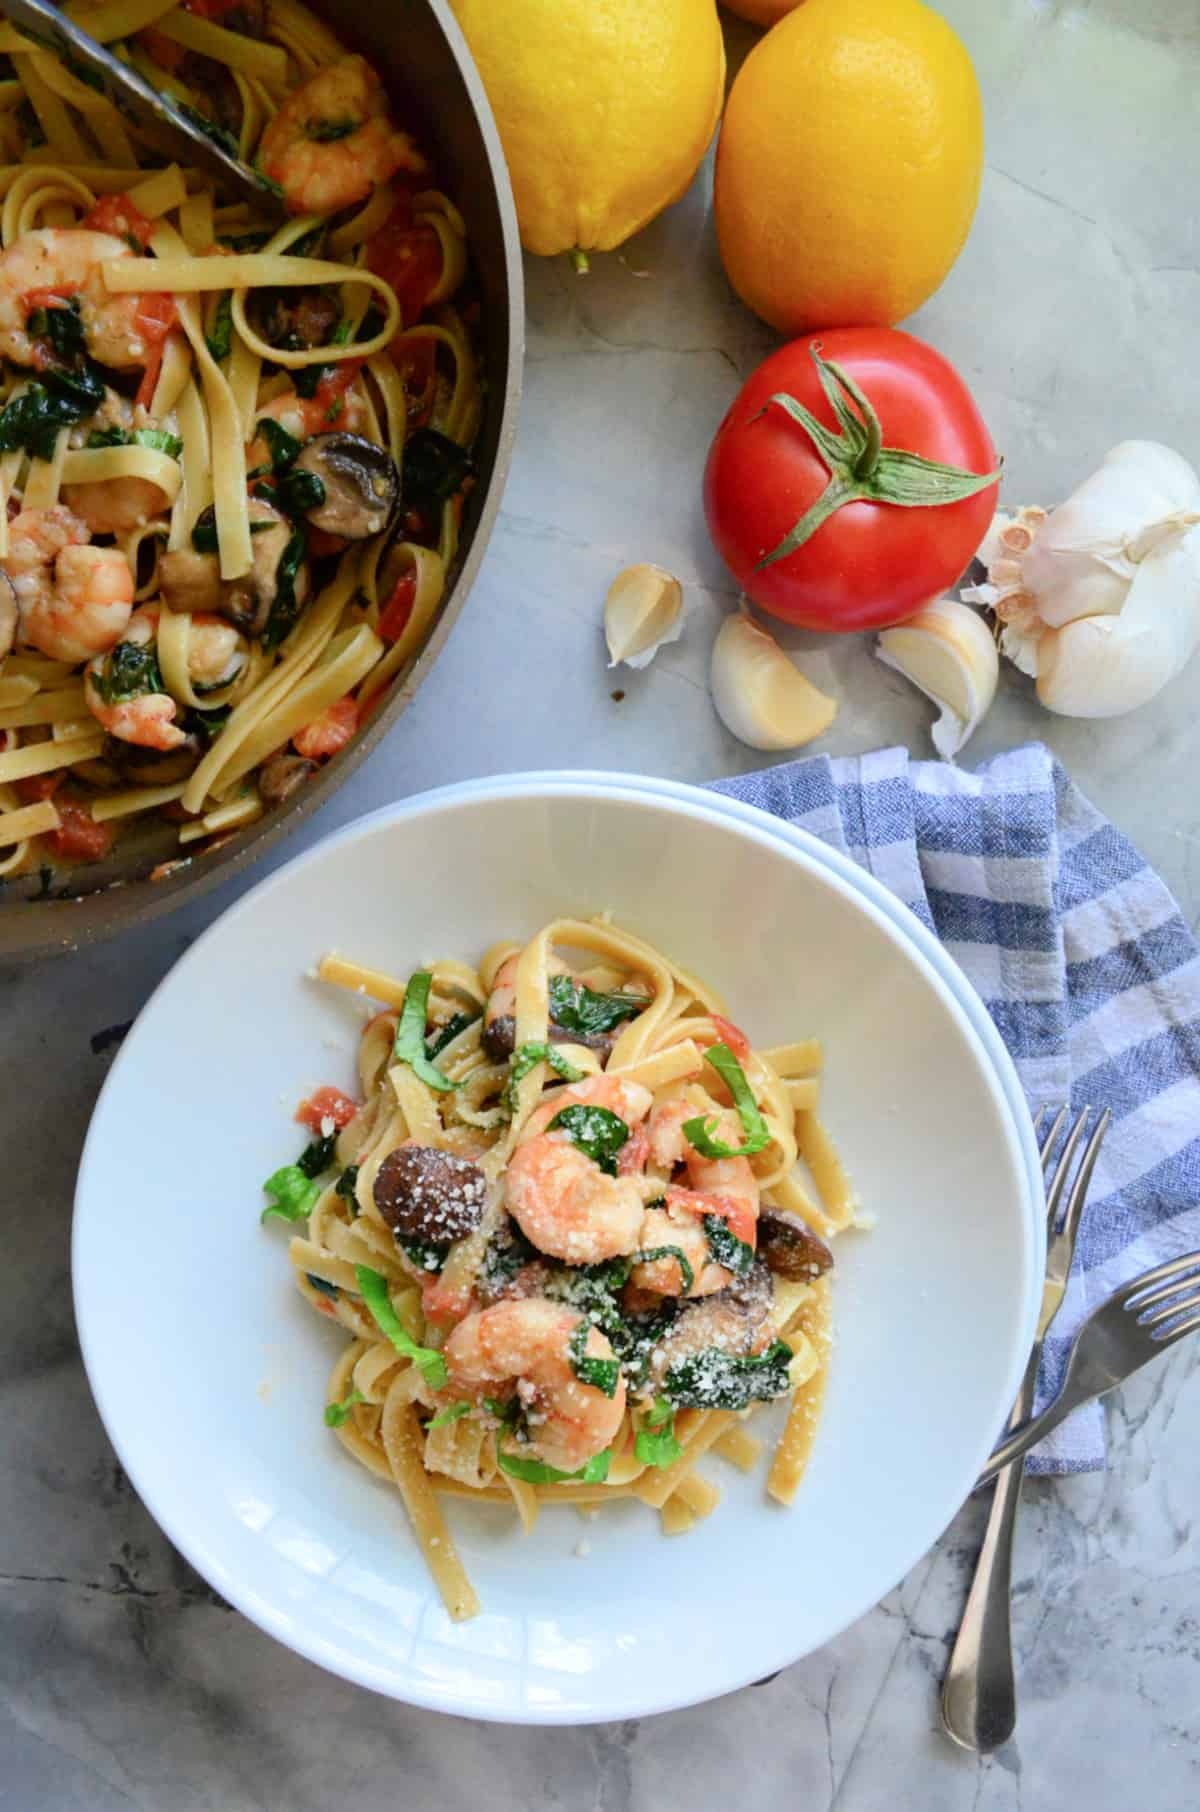 Top view of a white bowl of shrimp pasta with skillet next to it.